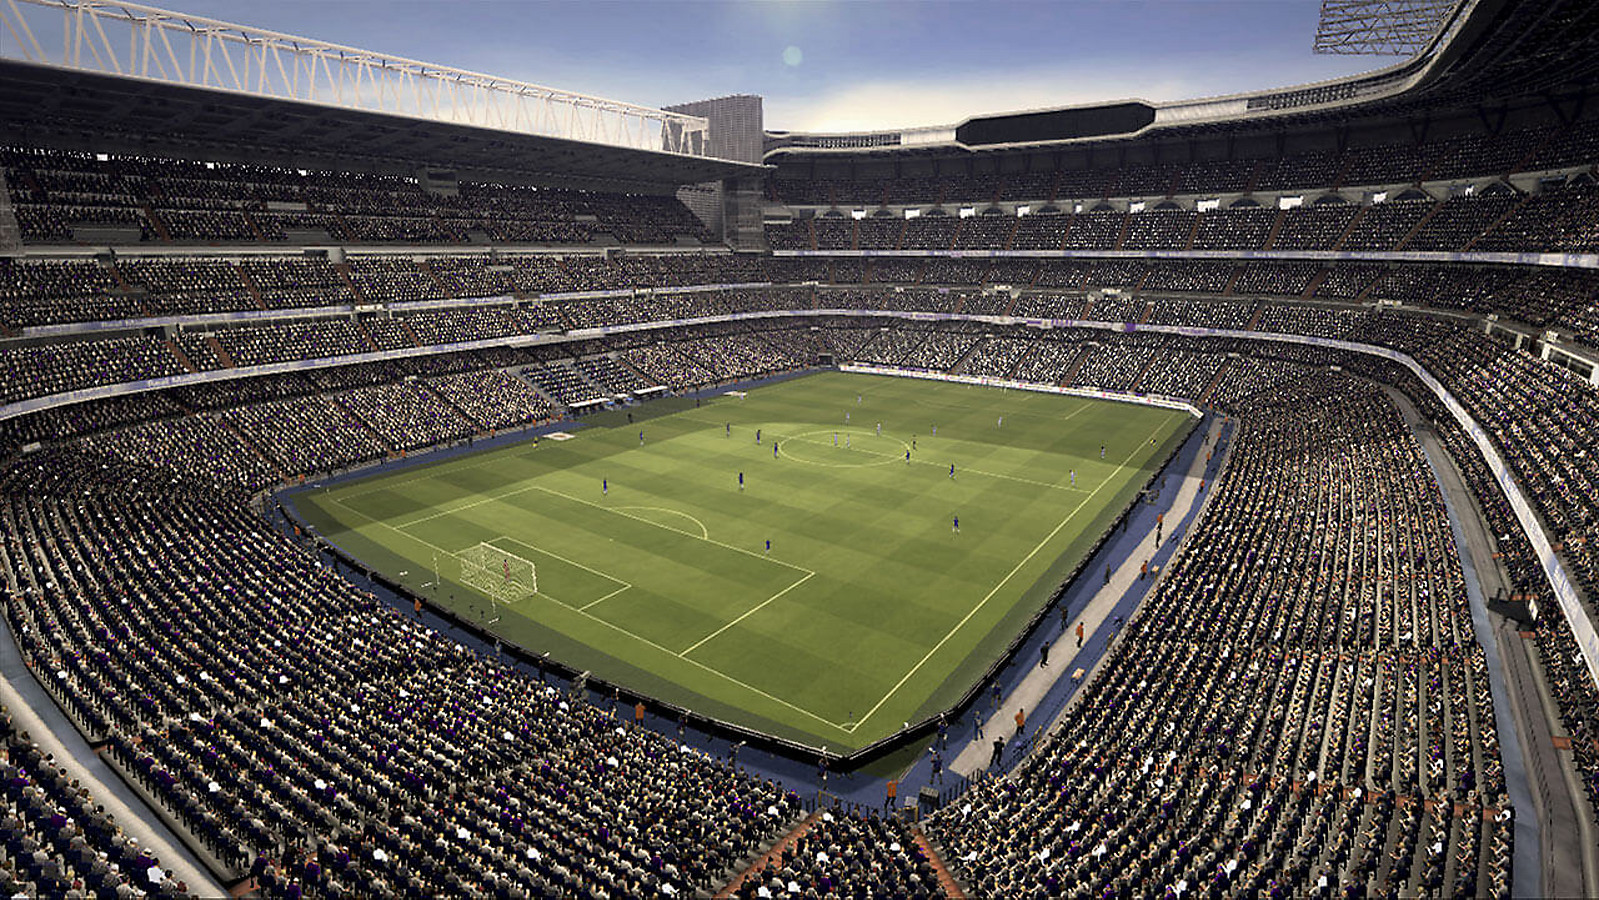 Among the best PS3 games we have FIFA